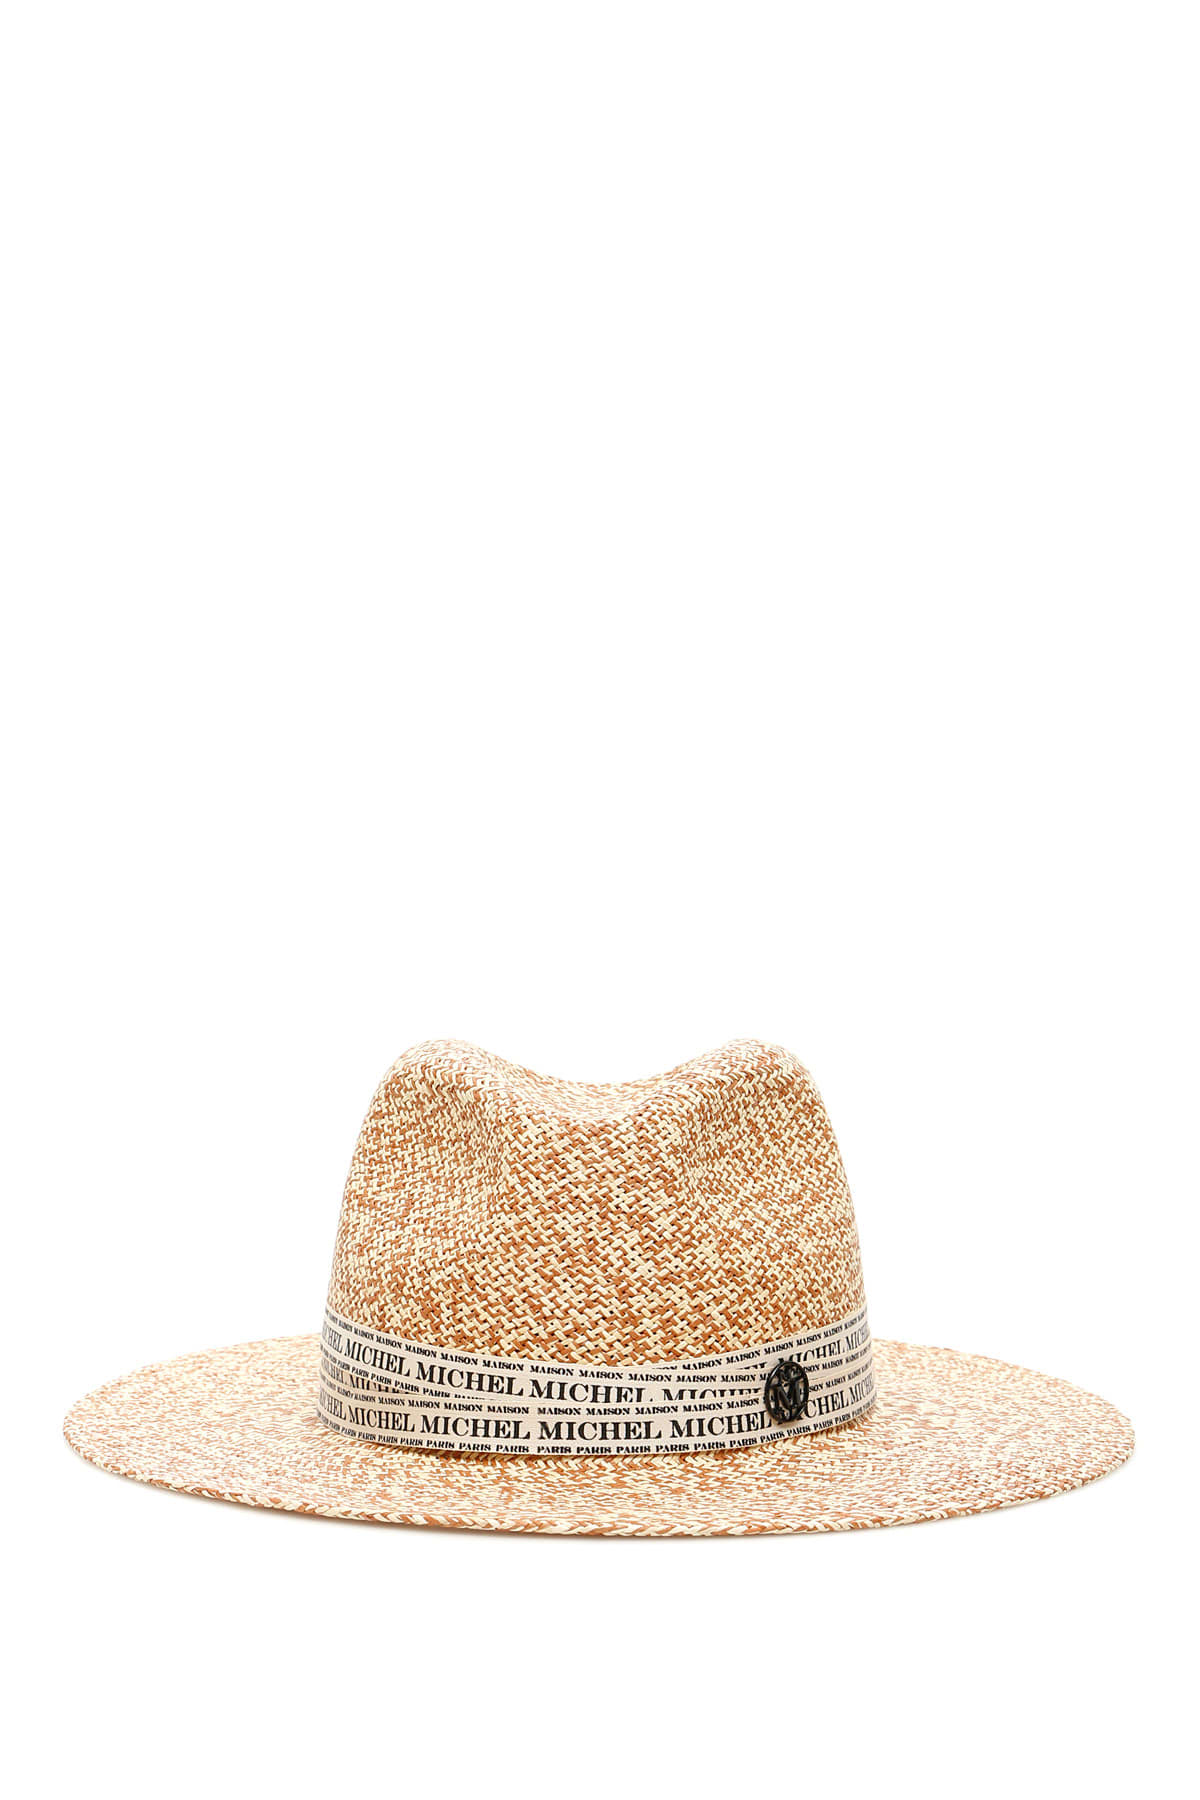 Maison Michel Hats HENRIETTA TWO-TONE STRAW HAT